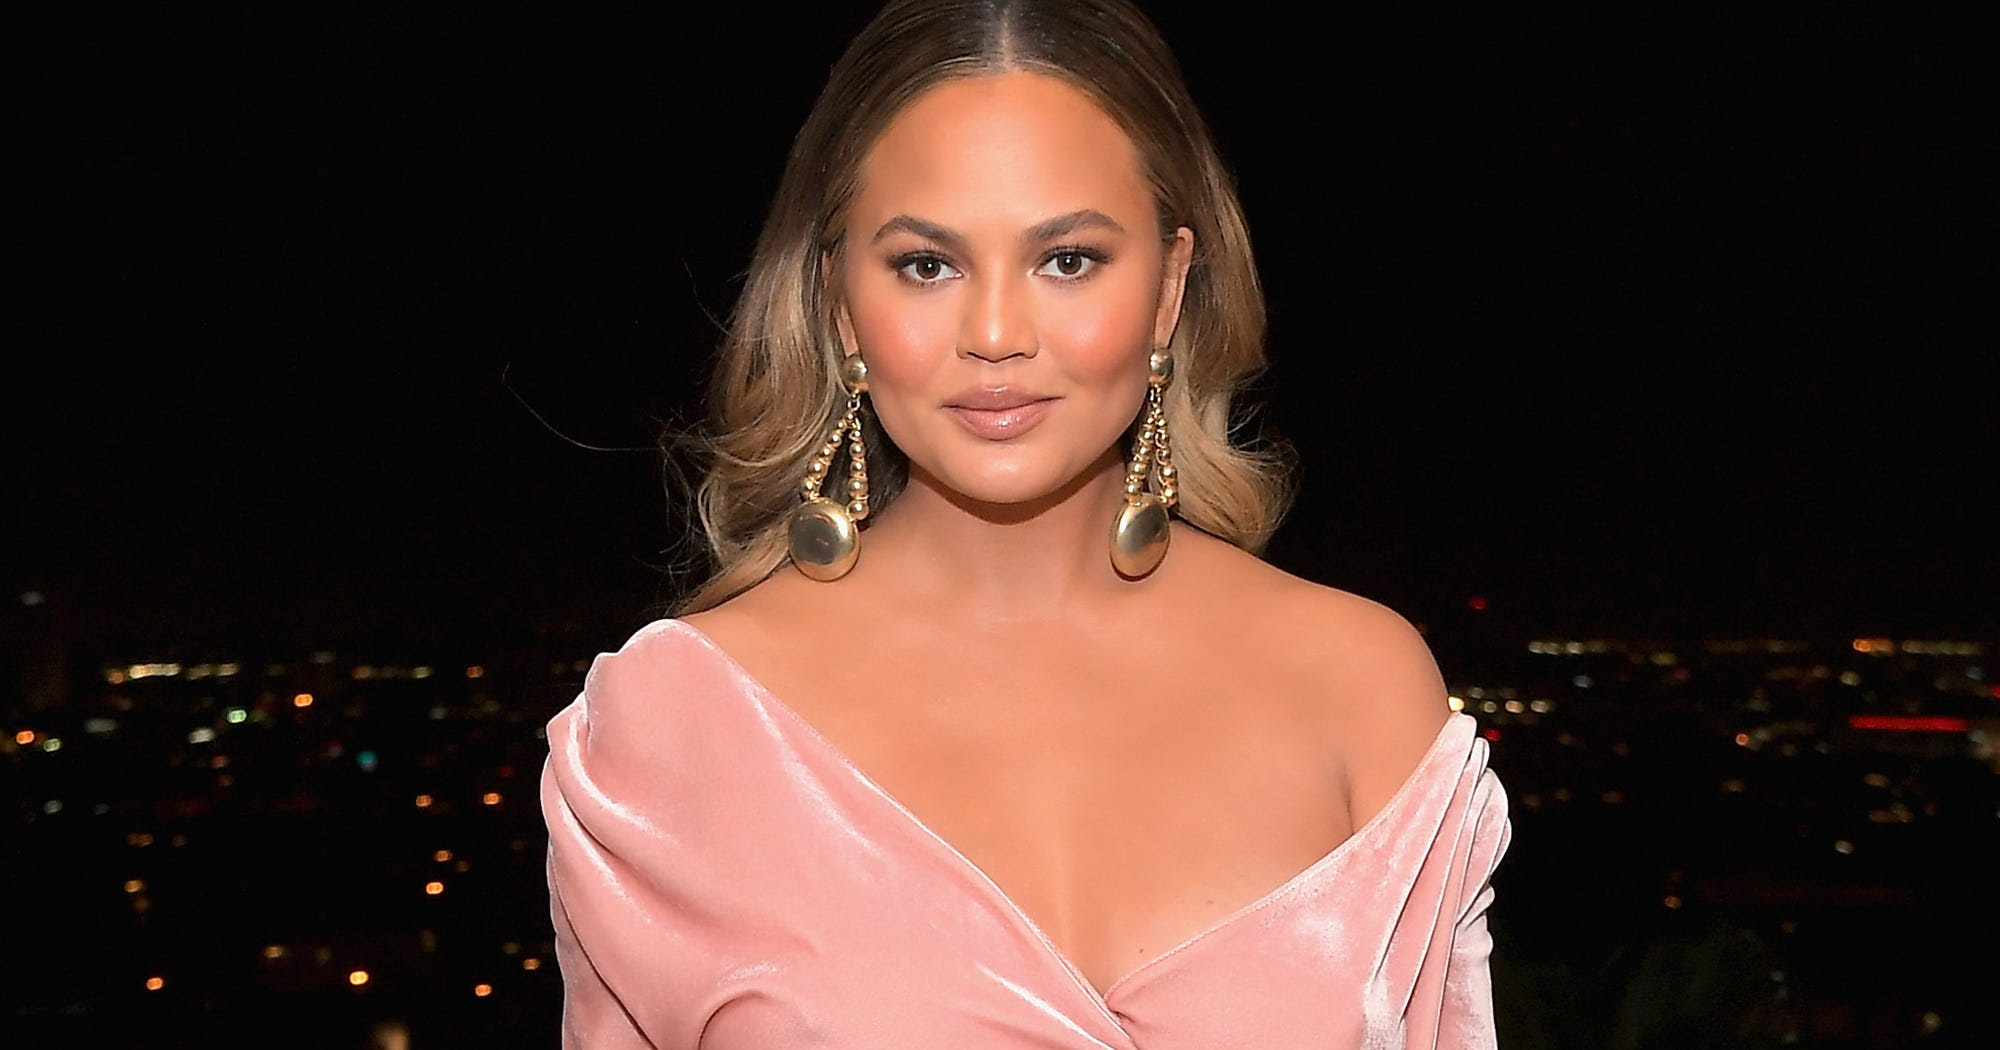 via0.com - Chrissy Teigen Cravings Trademark Lifestyle Brand